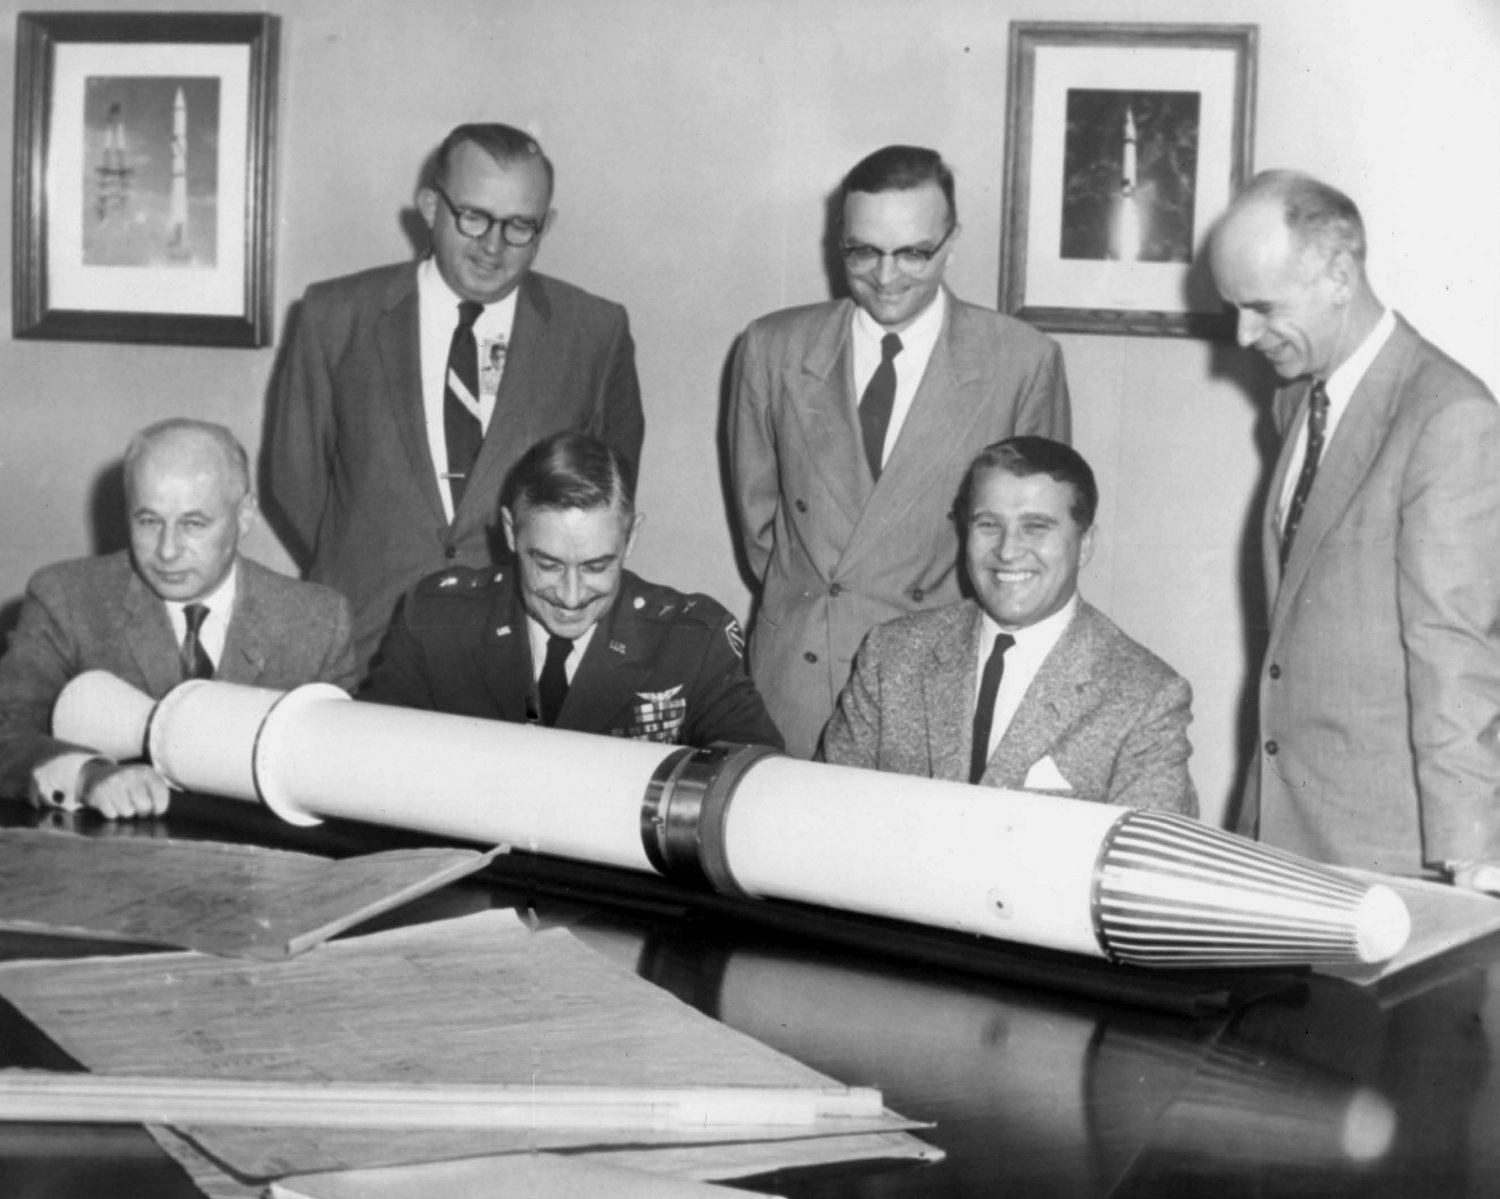 DR. WERNHER VON BRAUN & OTHERS WITH JUPITER-C ROCKET MODEL - 8X10 PHOTO (DA-306)